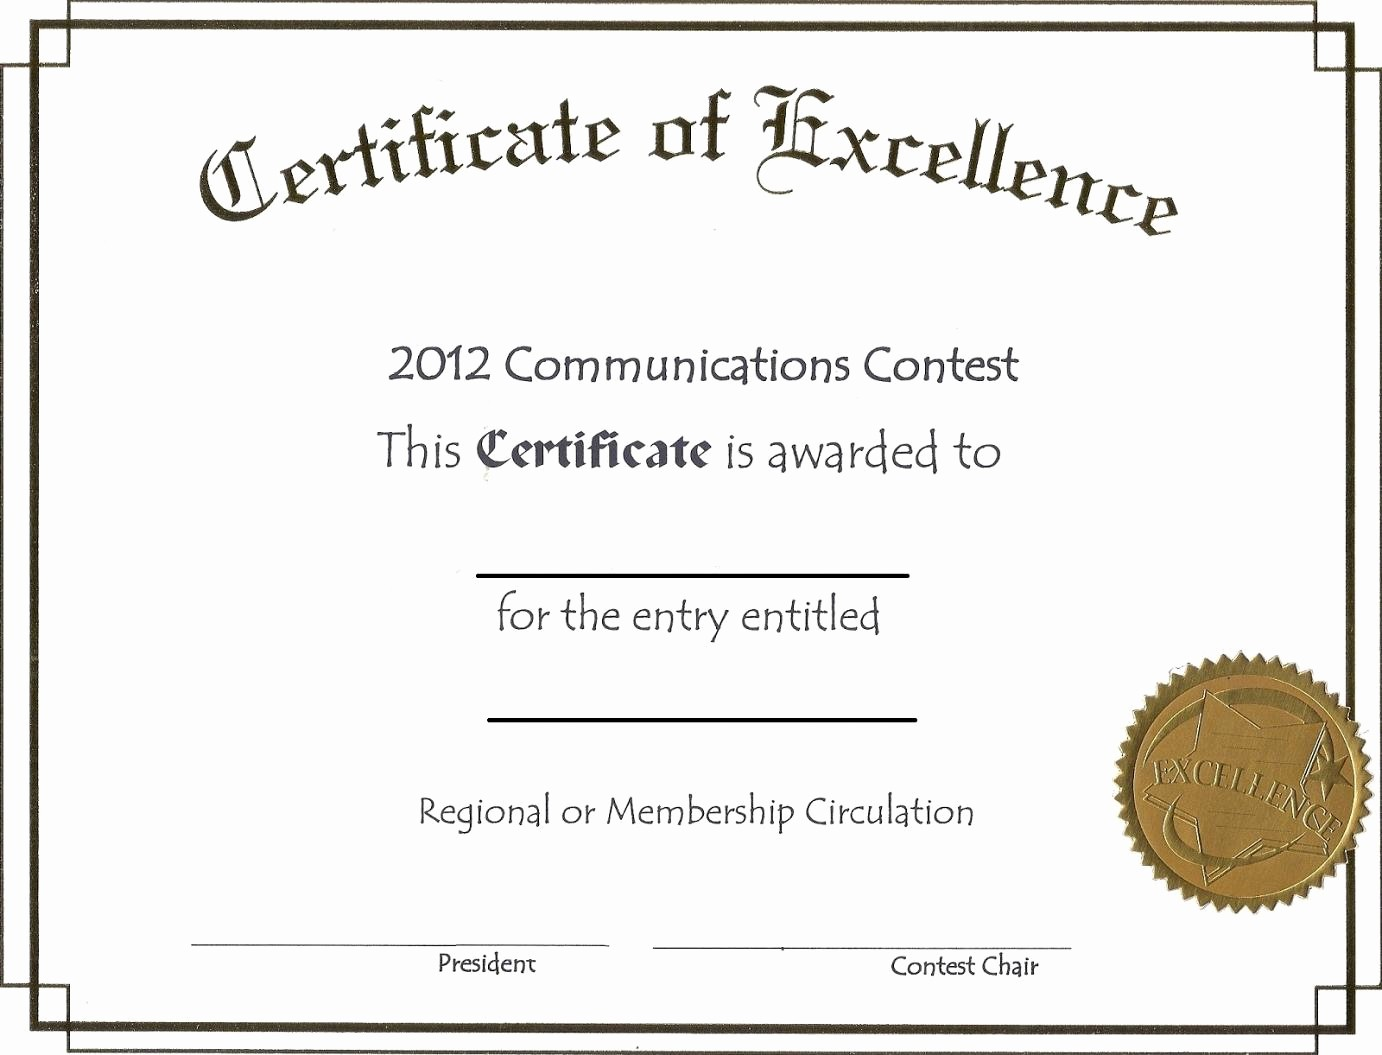 Student Council Certificate Template Free Luxury Free Editable Certificate Of Excellence Template Example